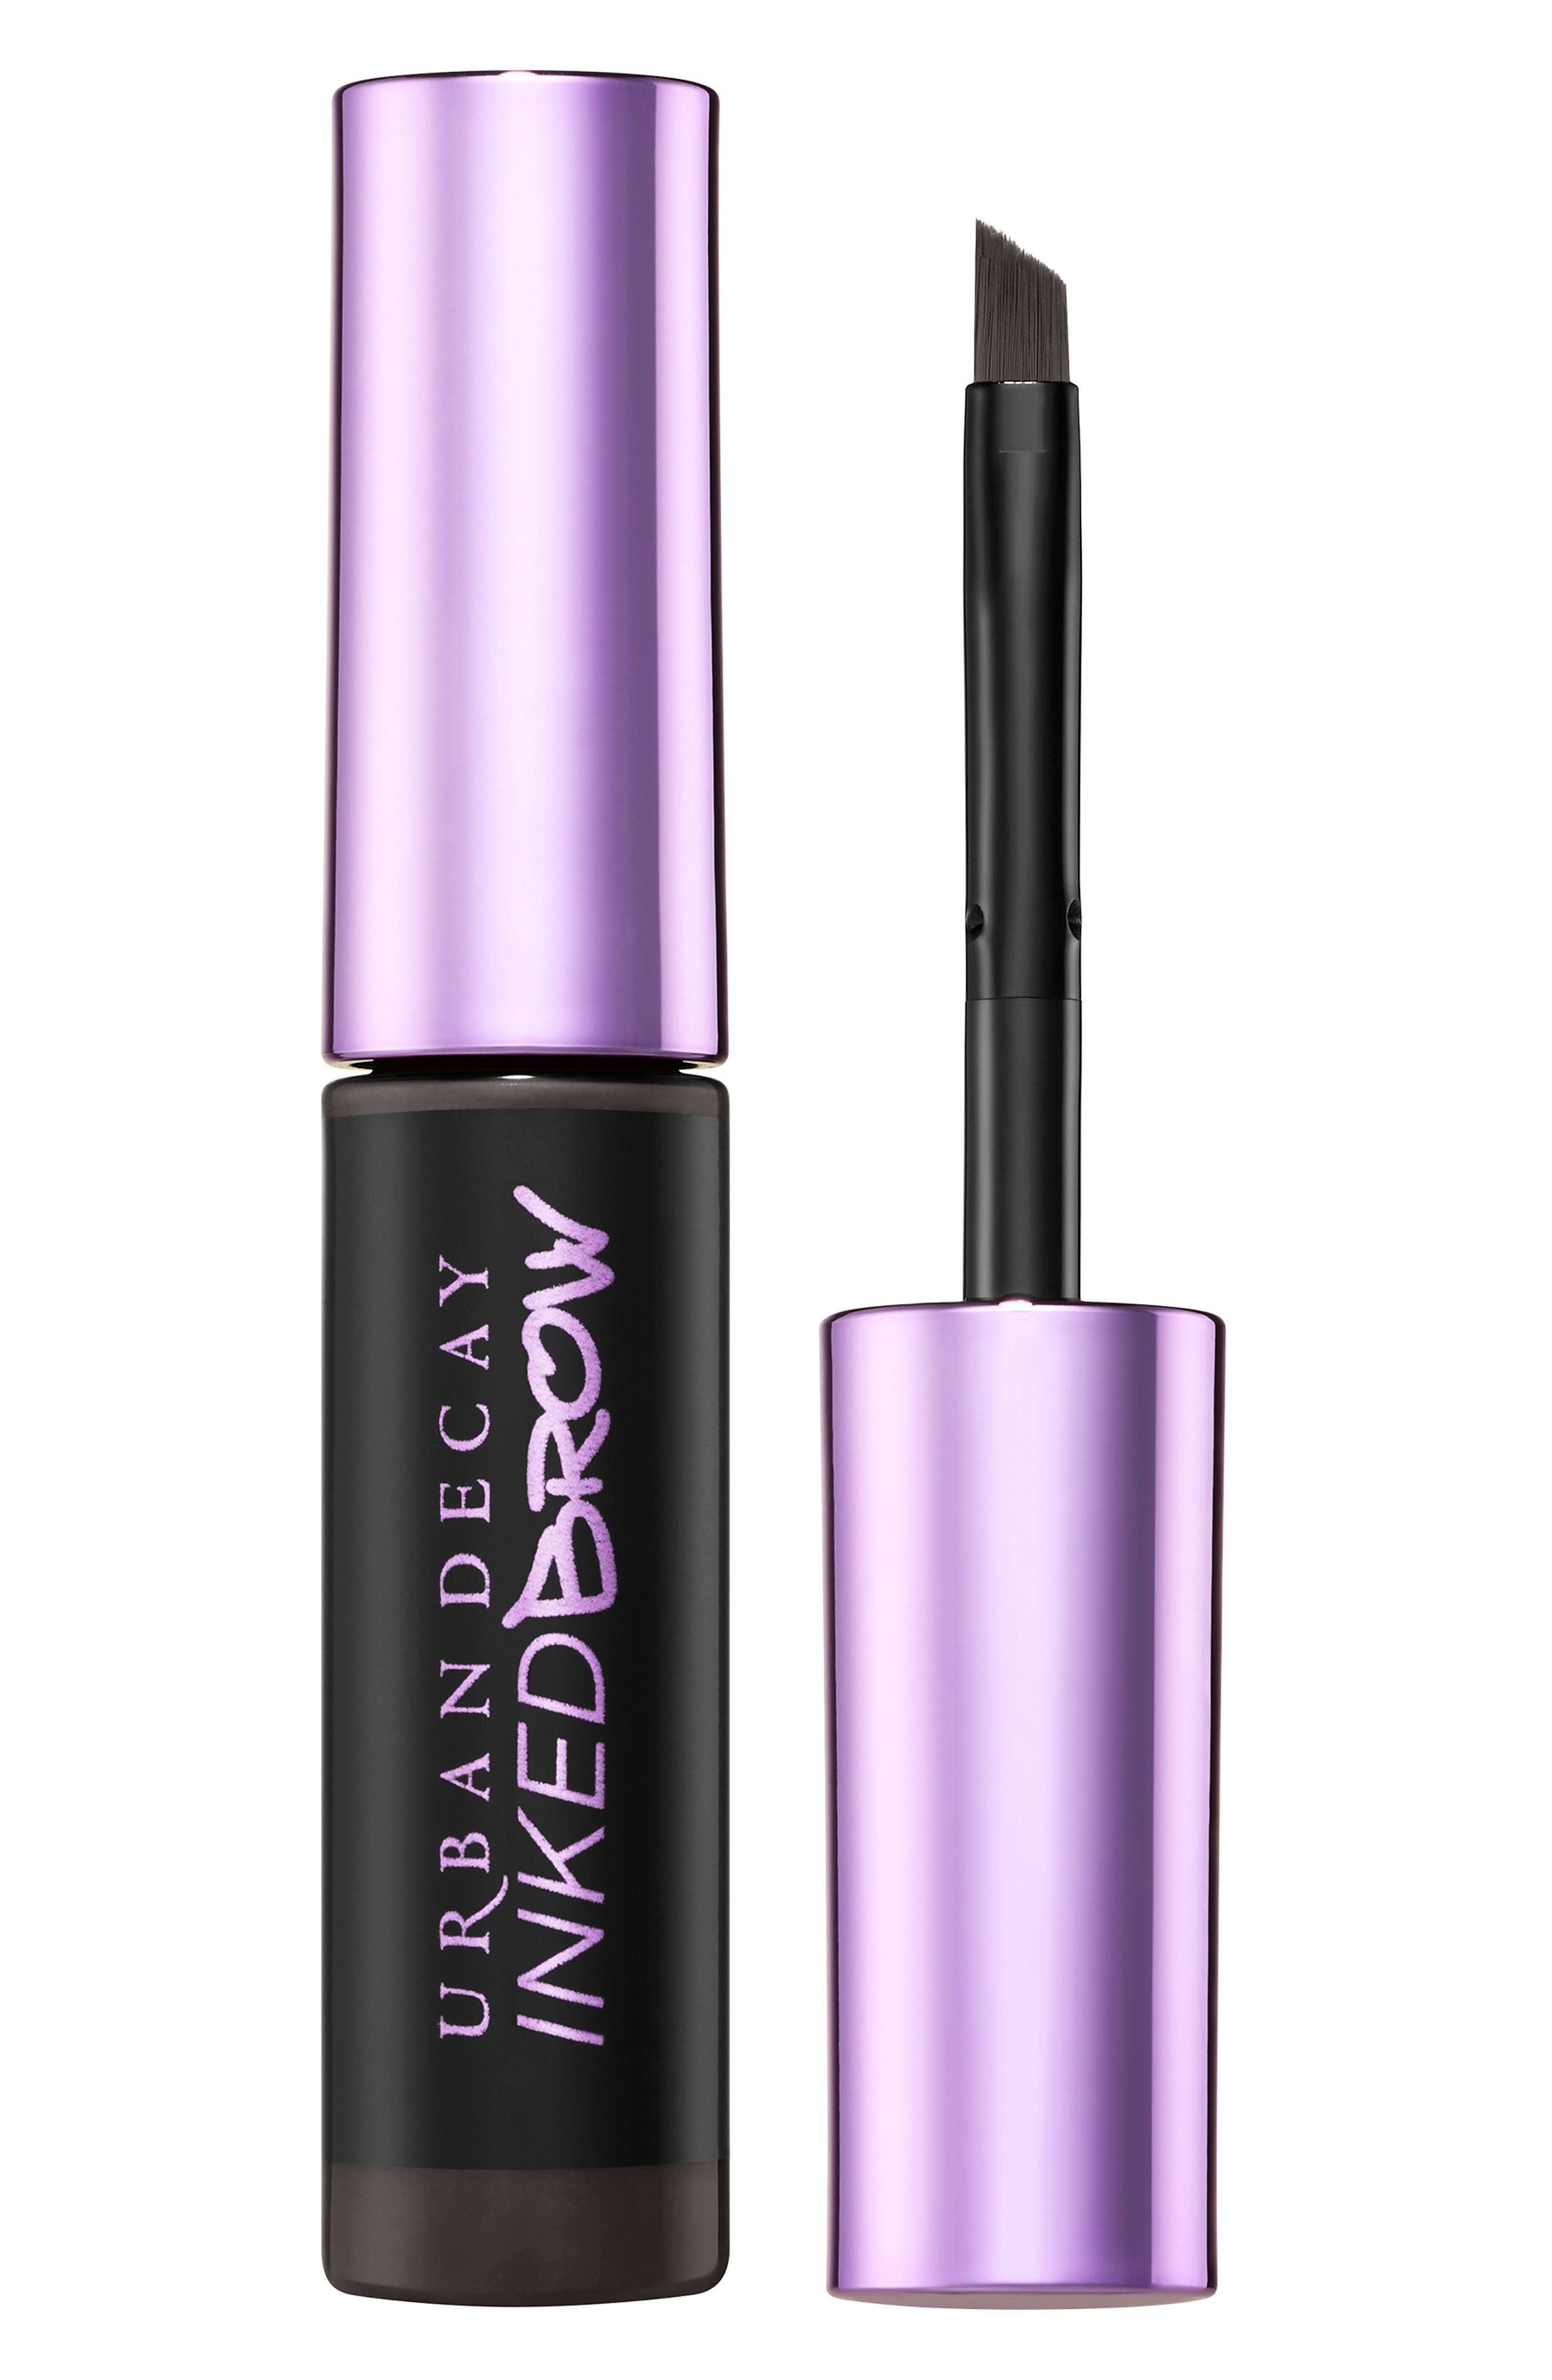 What it is: A semi-permanent, long-wearing brow gel. What it does: This gel helps create arches that last up to 60 hours. How to use: Make sure your skin is clean and dry before application. Using the built-in brush, fill in sparse areas and sculpt your existing brows. For lasting brows, avoid the eye area when cleansing your face. Style Name: Urban Decay Inked Brow Gel. Style Number: 6019556. Available in stores.